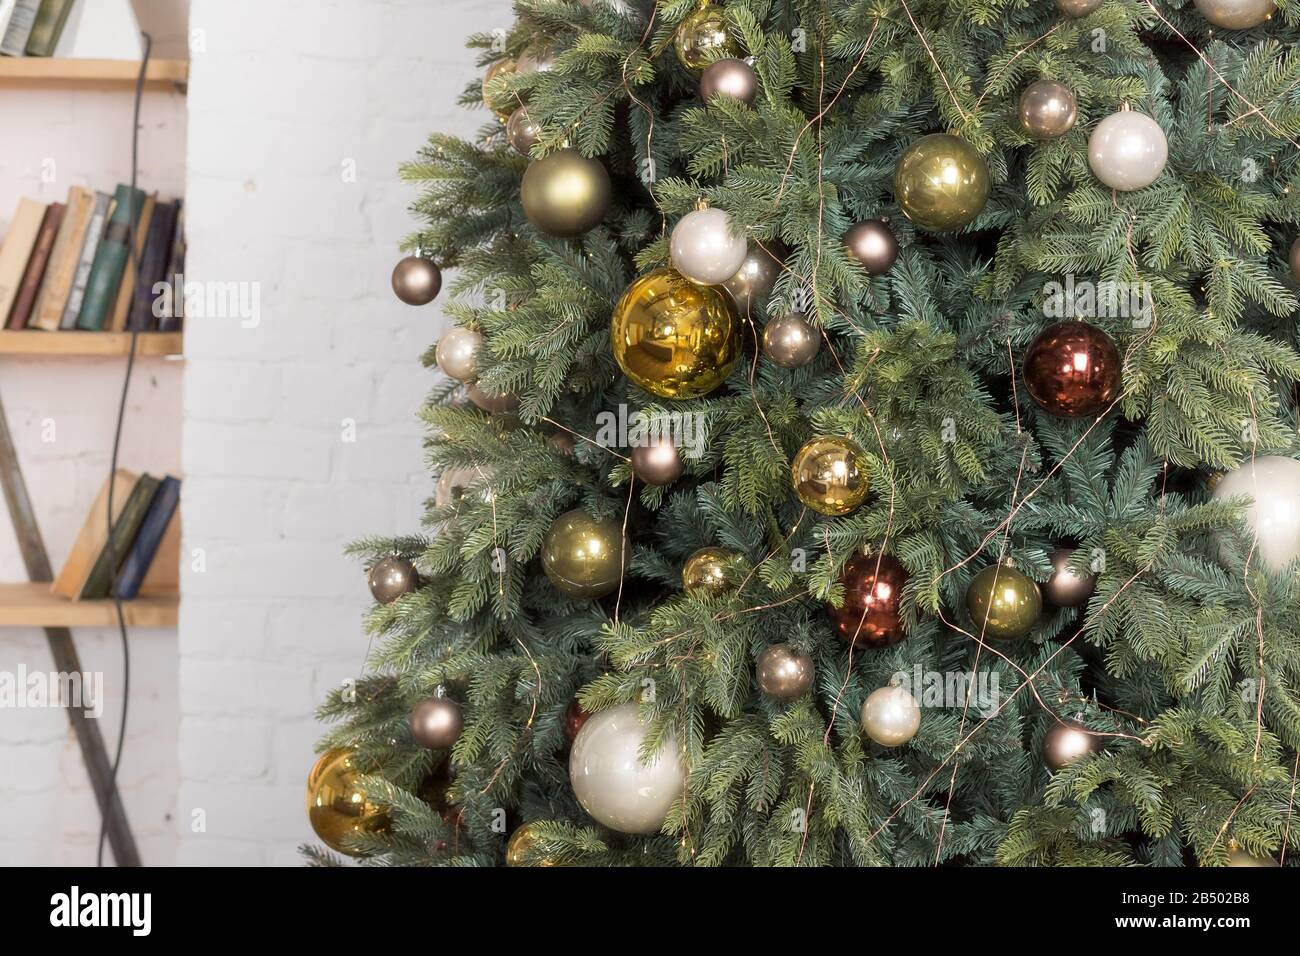 Christmas Tree With Shiny White Gold And Bronze Baubles In Living Room Branches Of Christmas Trees With Bronze Brown Toys And Garland On A Blurred Stock Photo Alamy